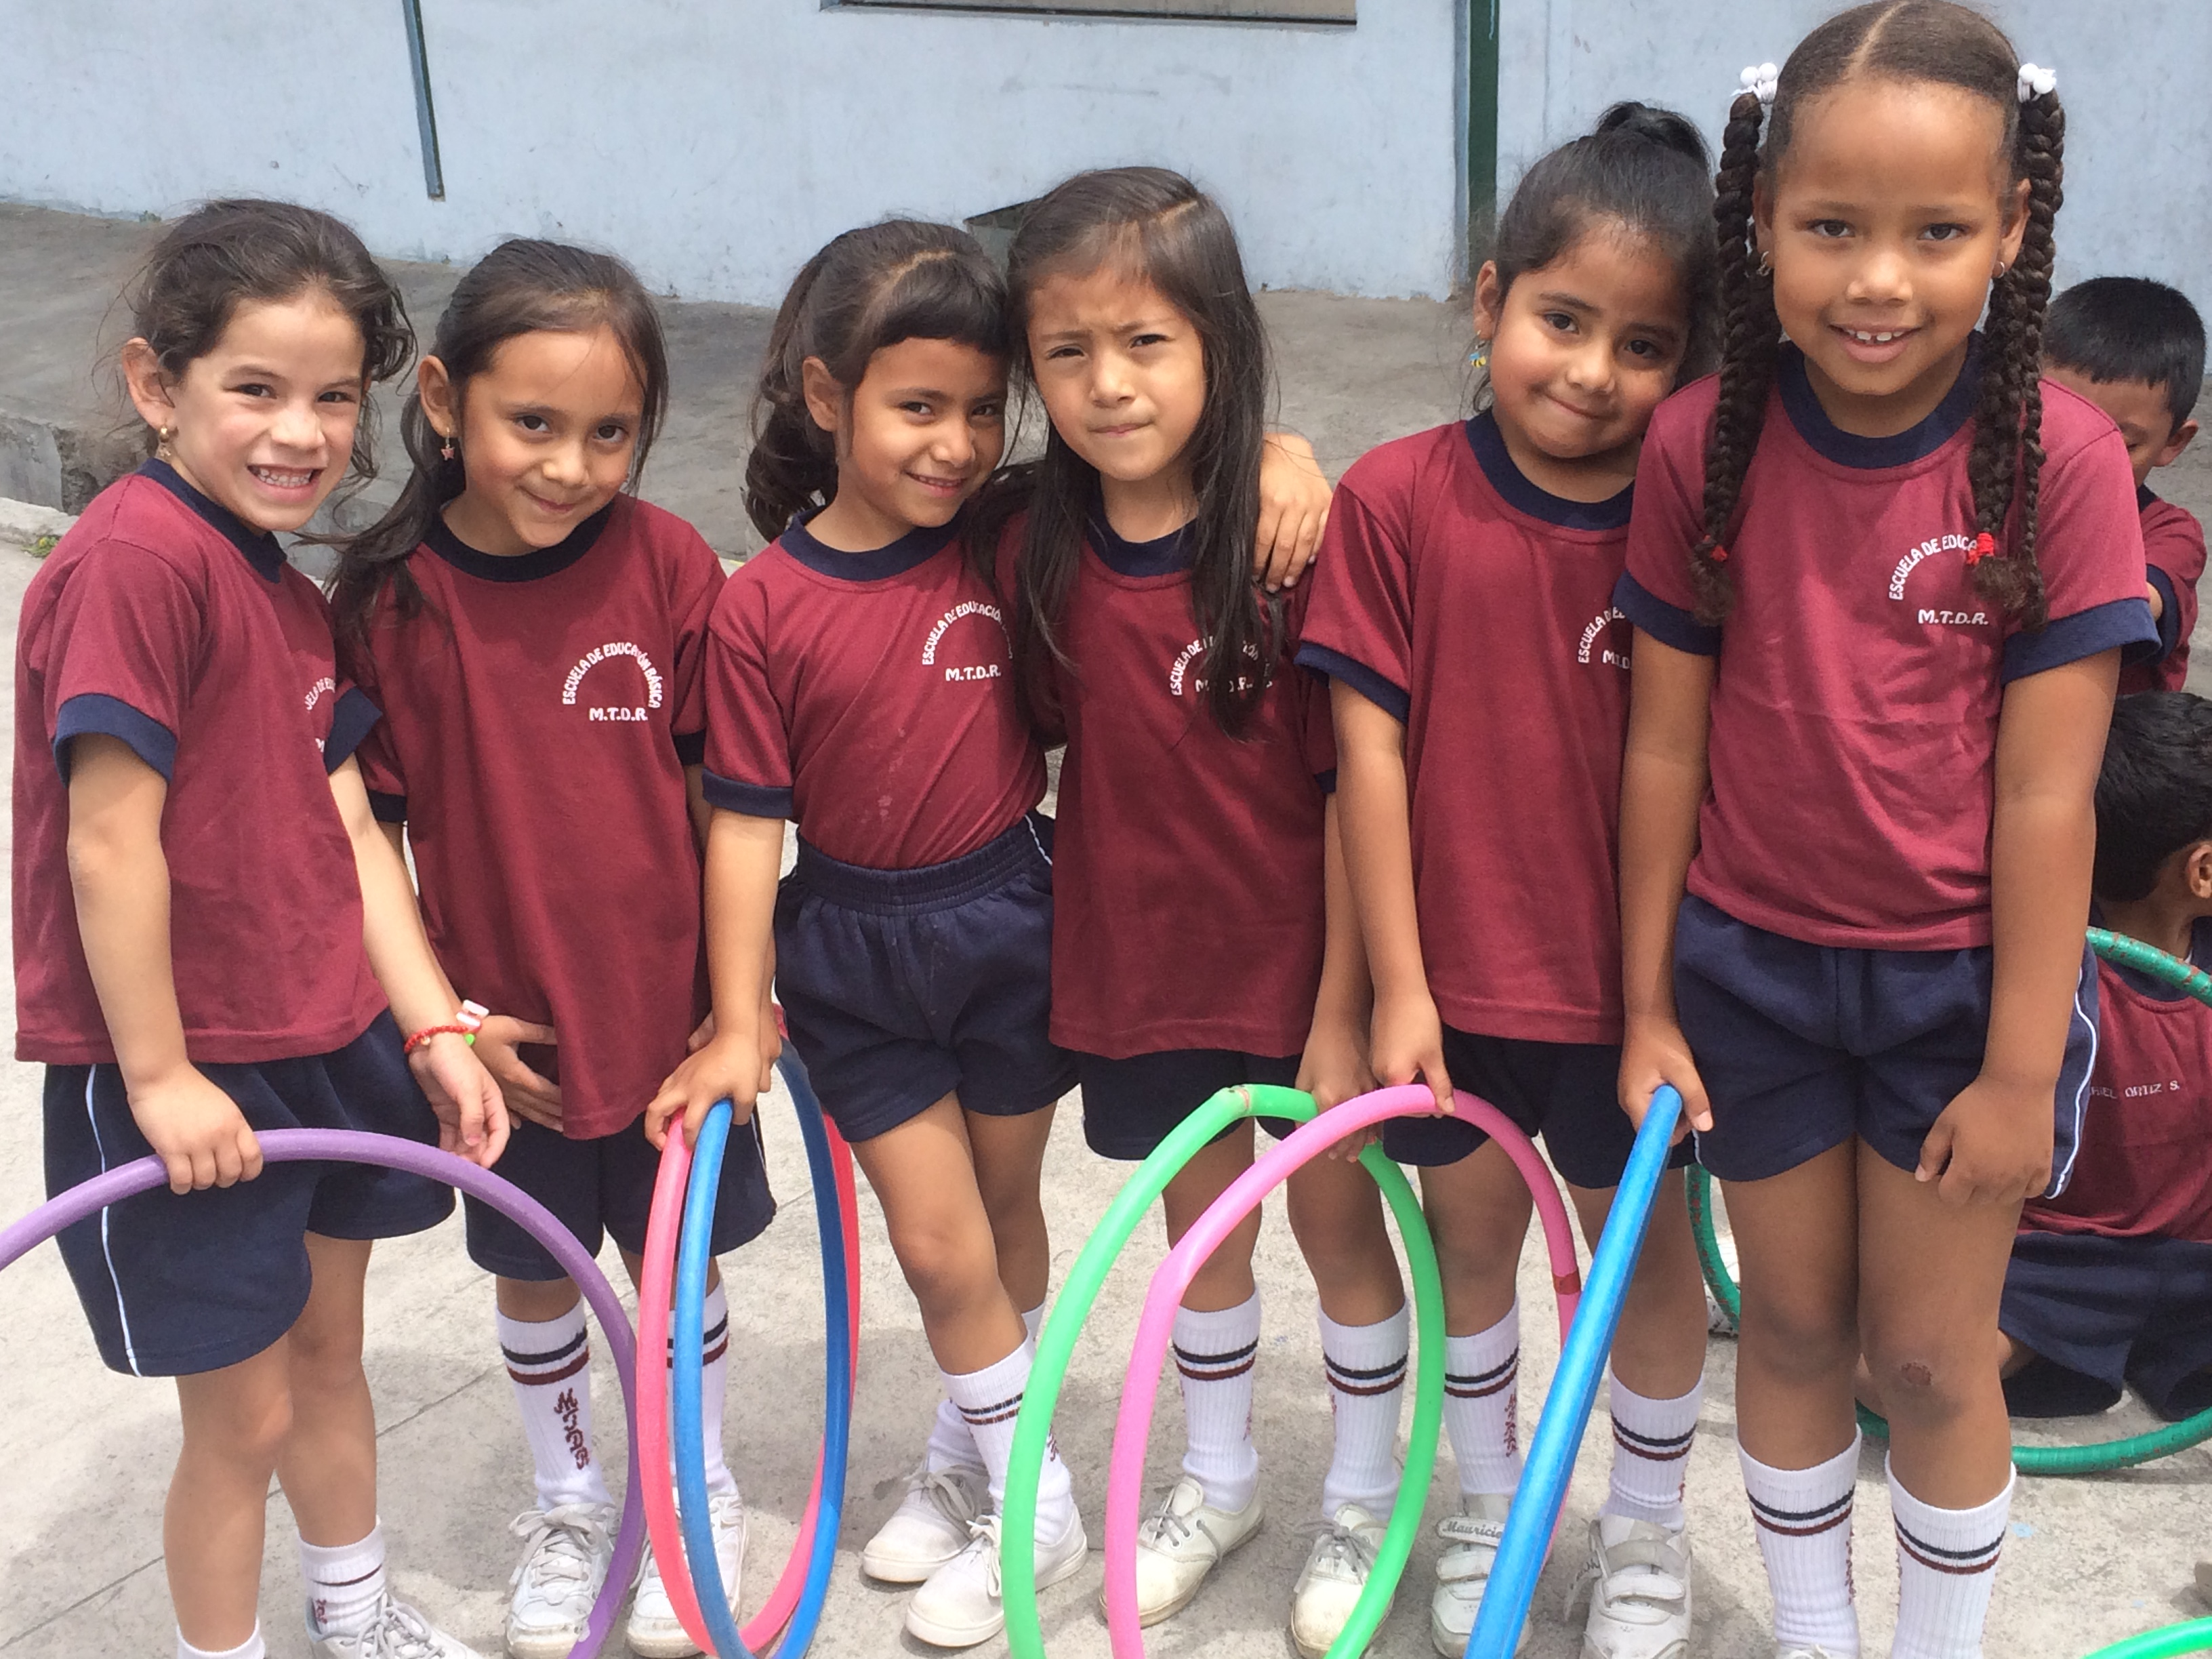 Schoolchildren in Quito, Ecuador, one of the cities where the joint Curry School-Inter-American Development Bank team evaluated teacher-student interactions.